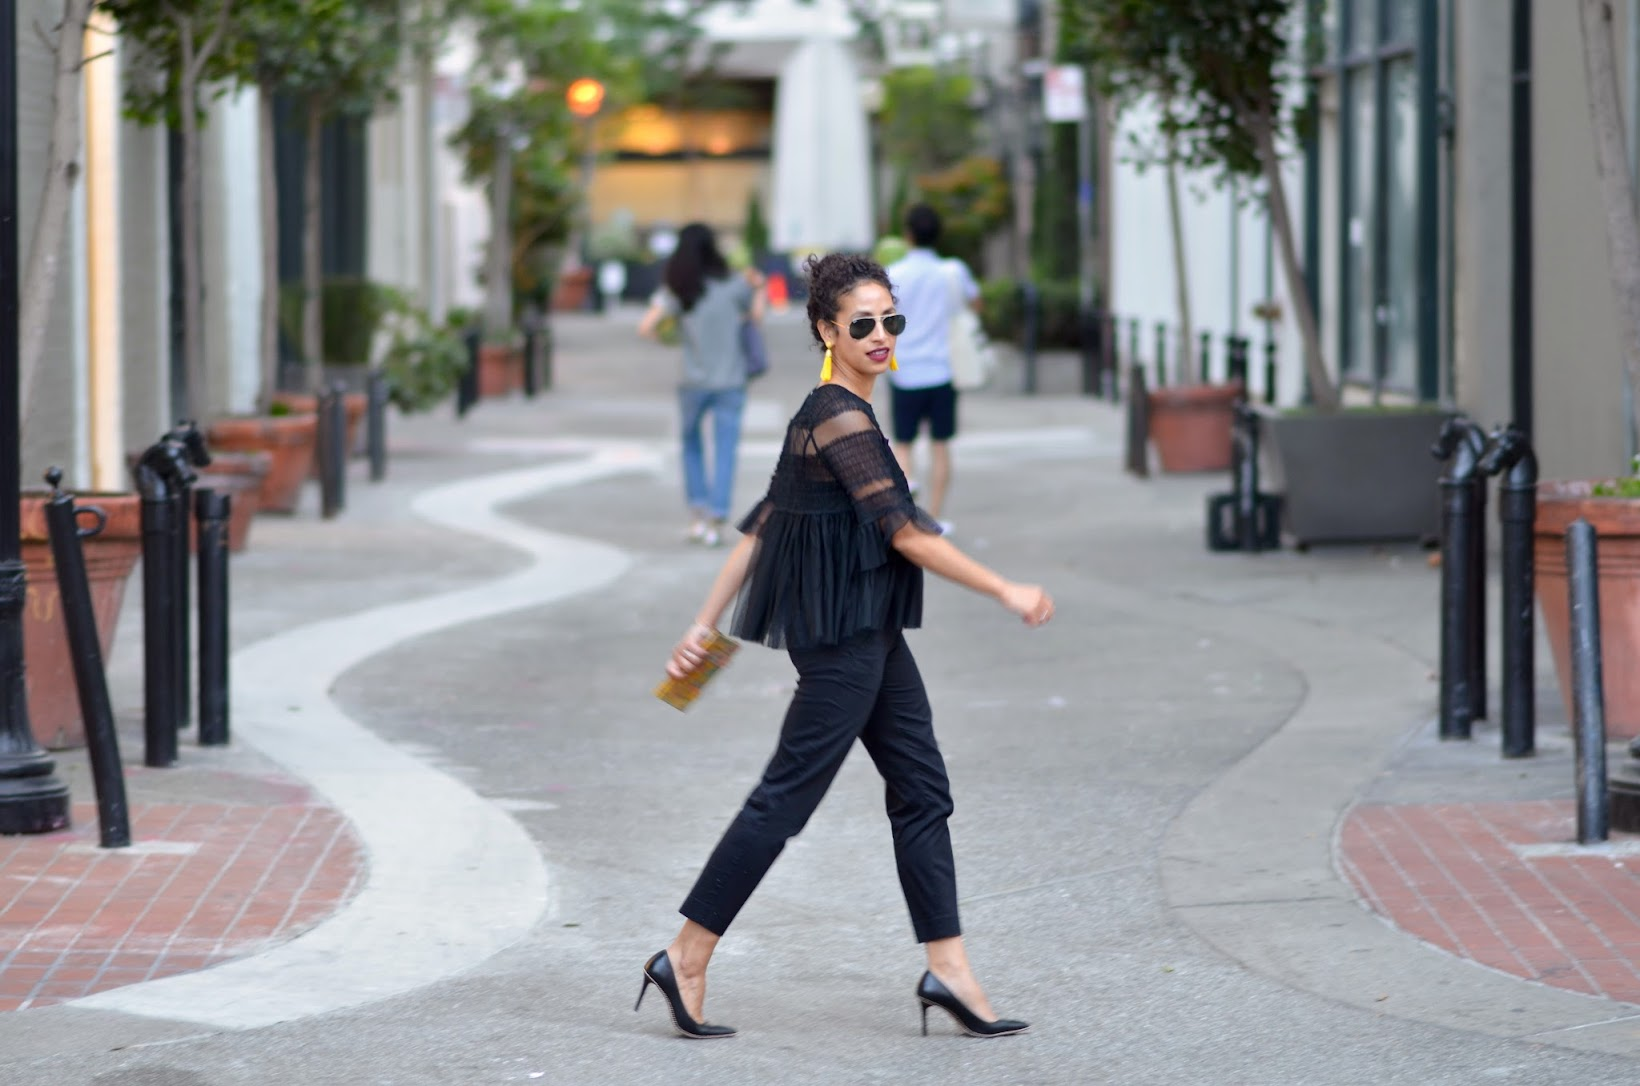 Zara tulle top, all black, chic hallowee syle, Coach stud pumps, BabuleBar Piñata earrings, tulle zara top, romantic ruffle top, Sf street style